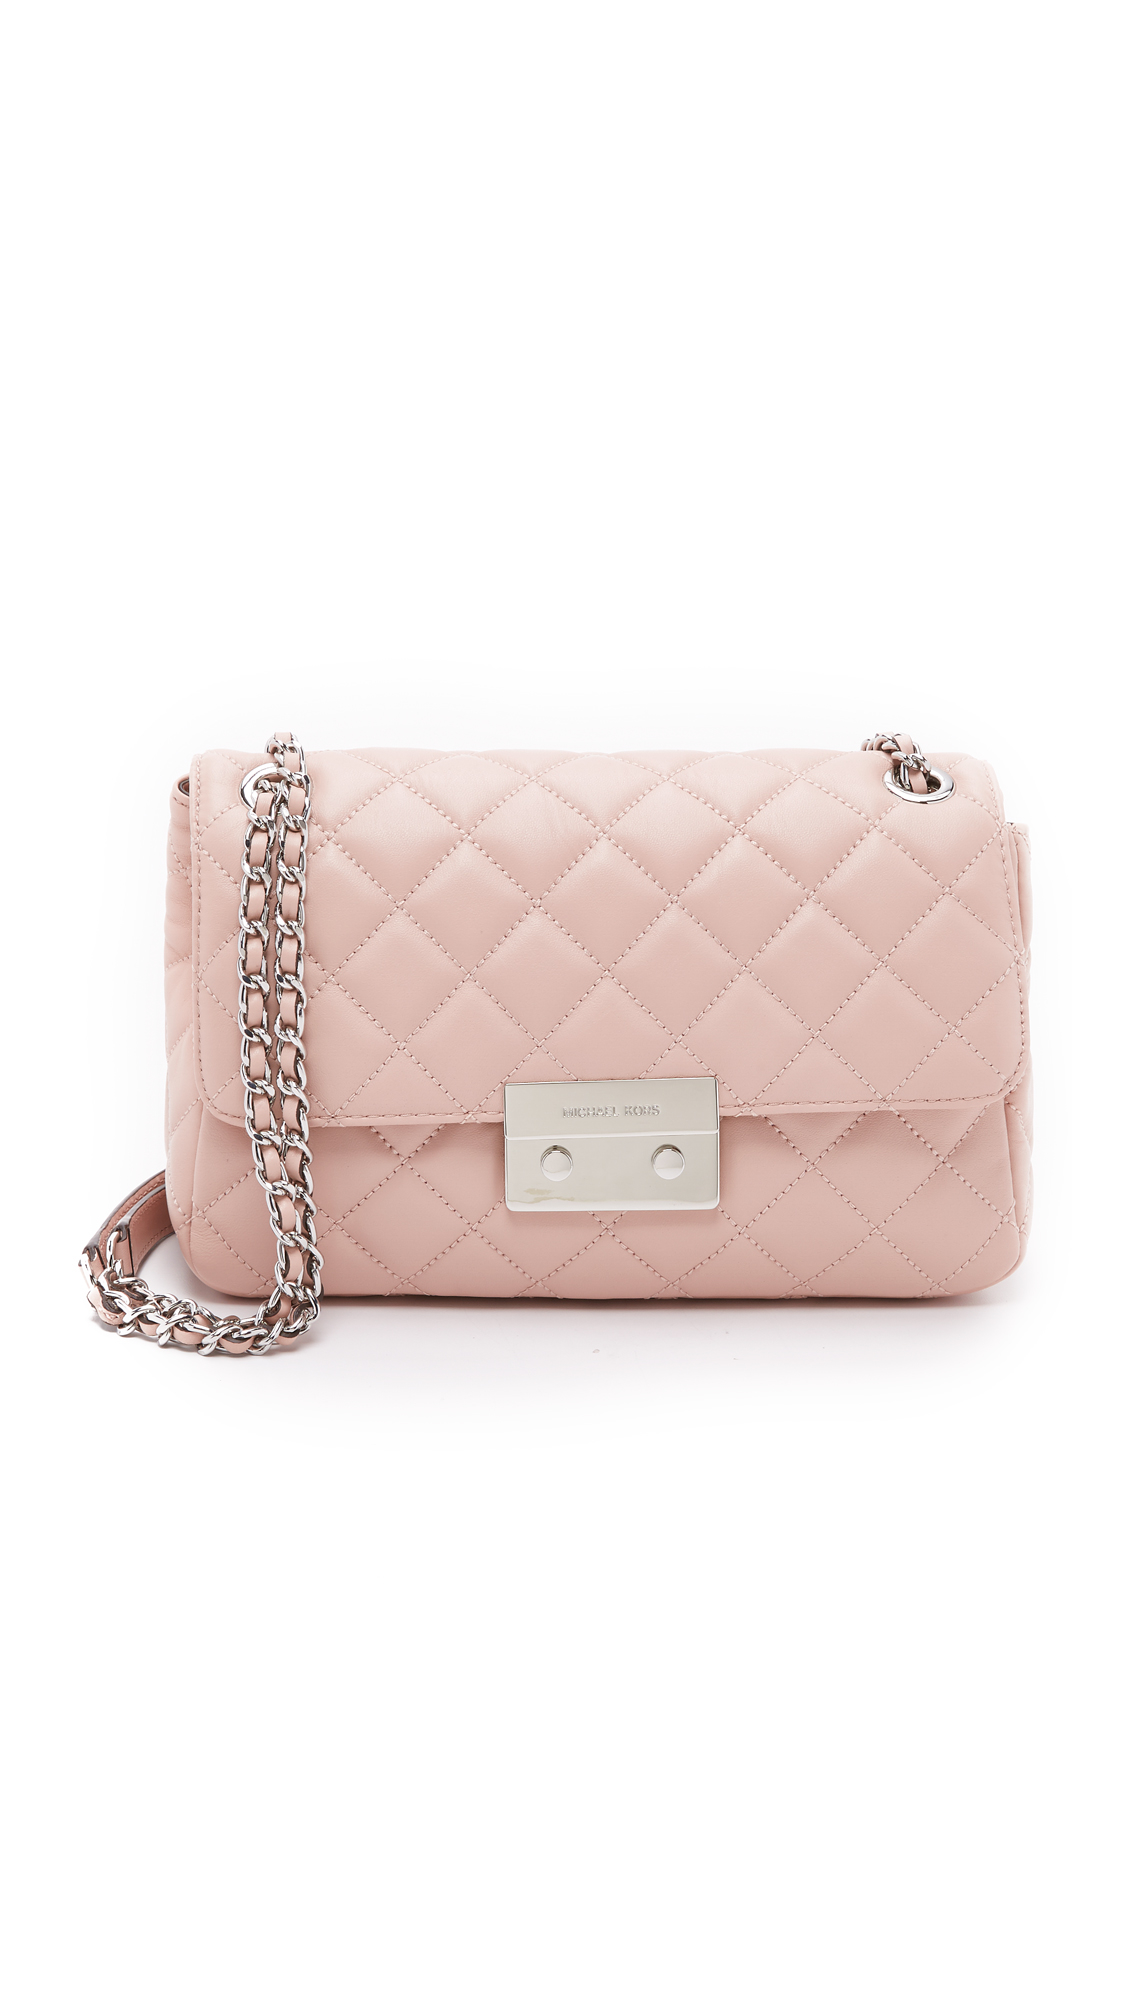 34f1a6ed8232 MICHAEL Michael Kors Sloan Large Chain Shoulder Bag - Ballet in Pink ...